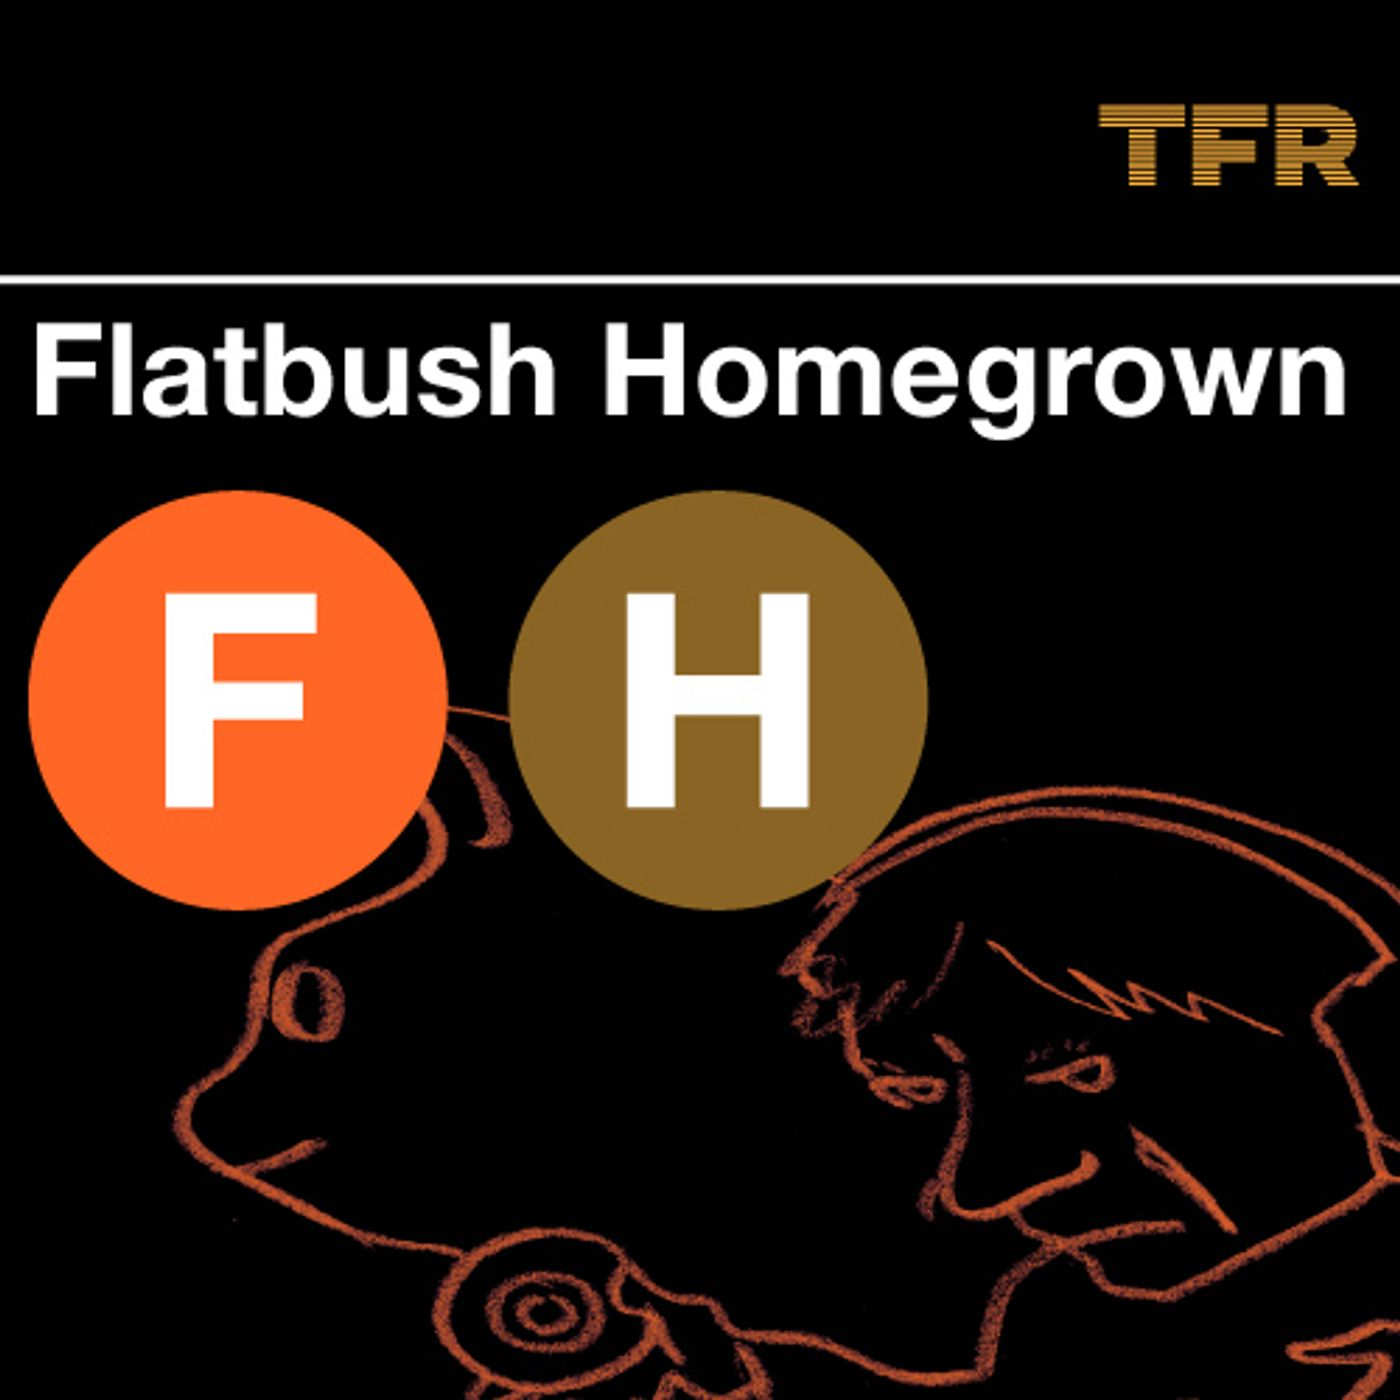 Flatbush Homegrown